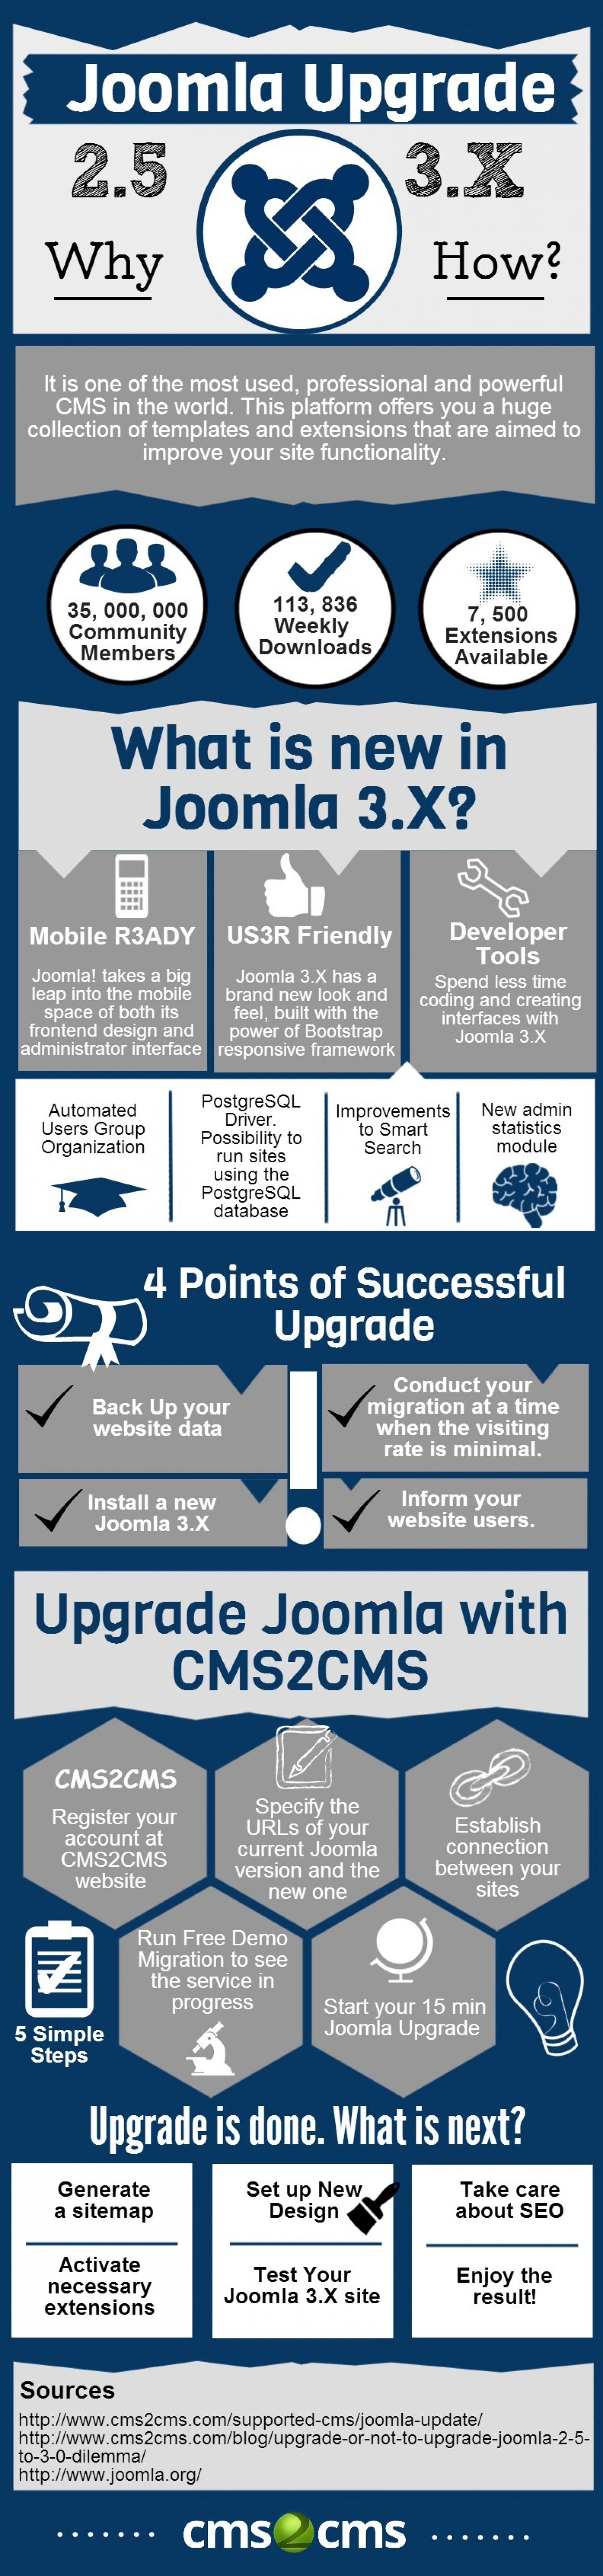 How to Upgrade Joomla in 15 min Infographic